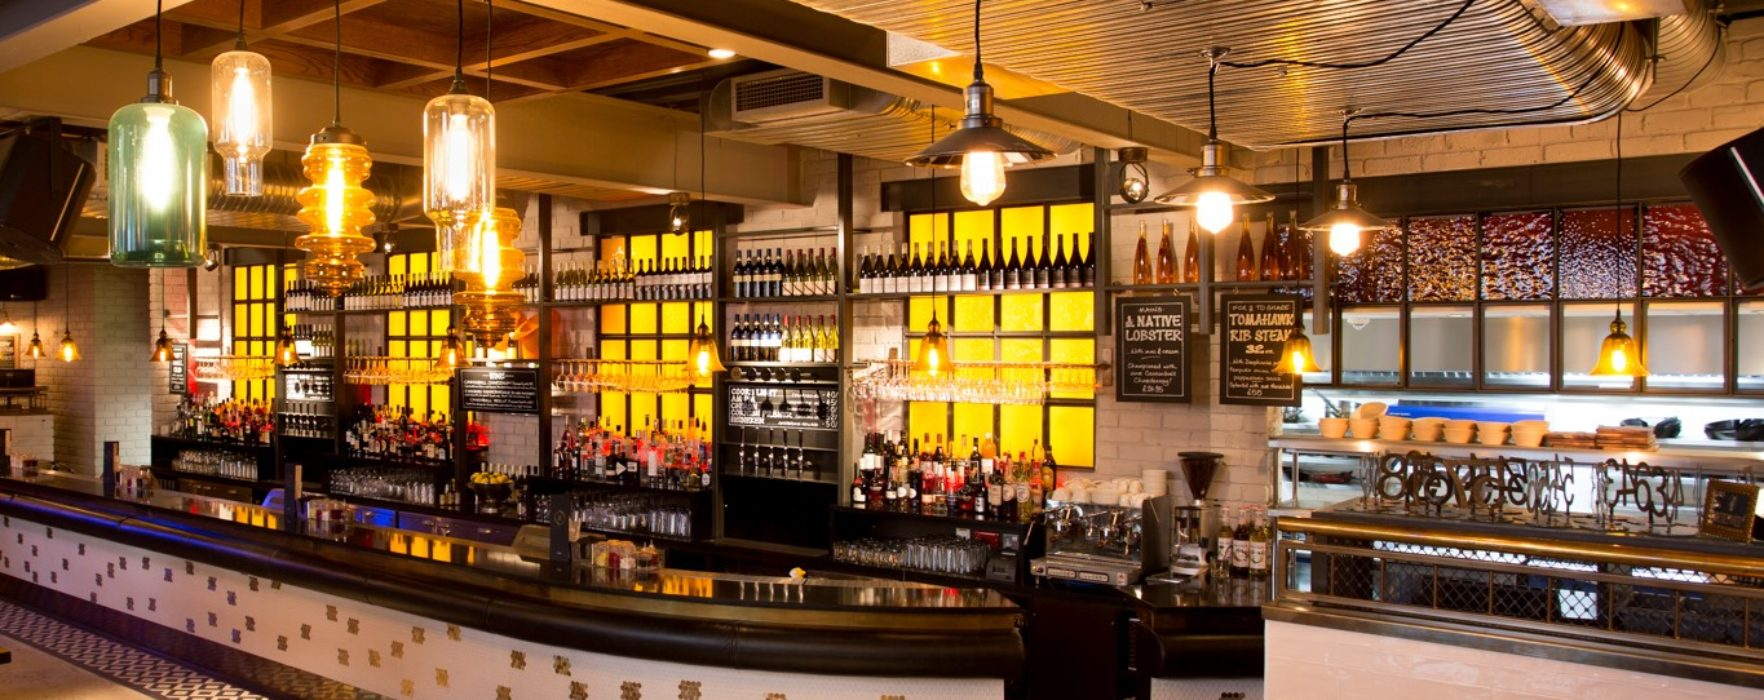 Martini Espresso on tap? Manahatta's your kind of bar!